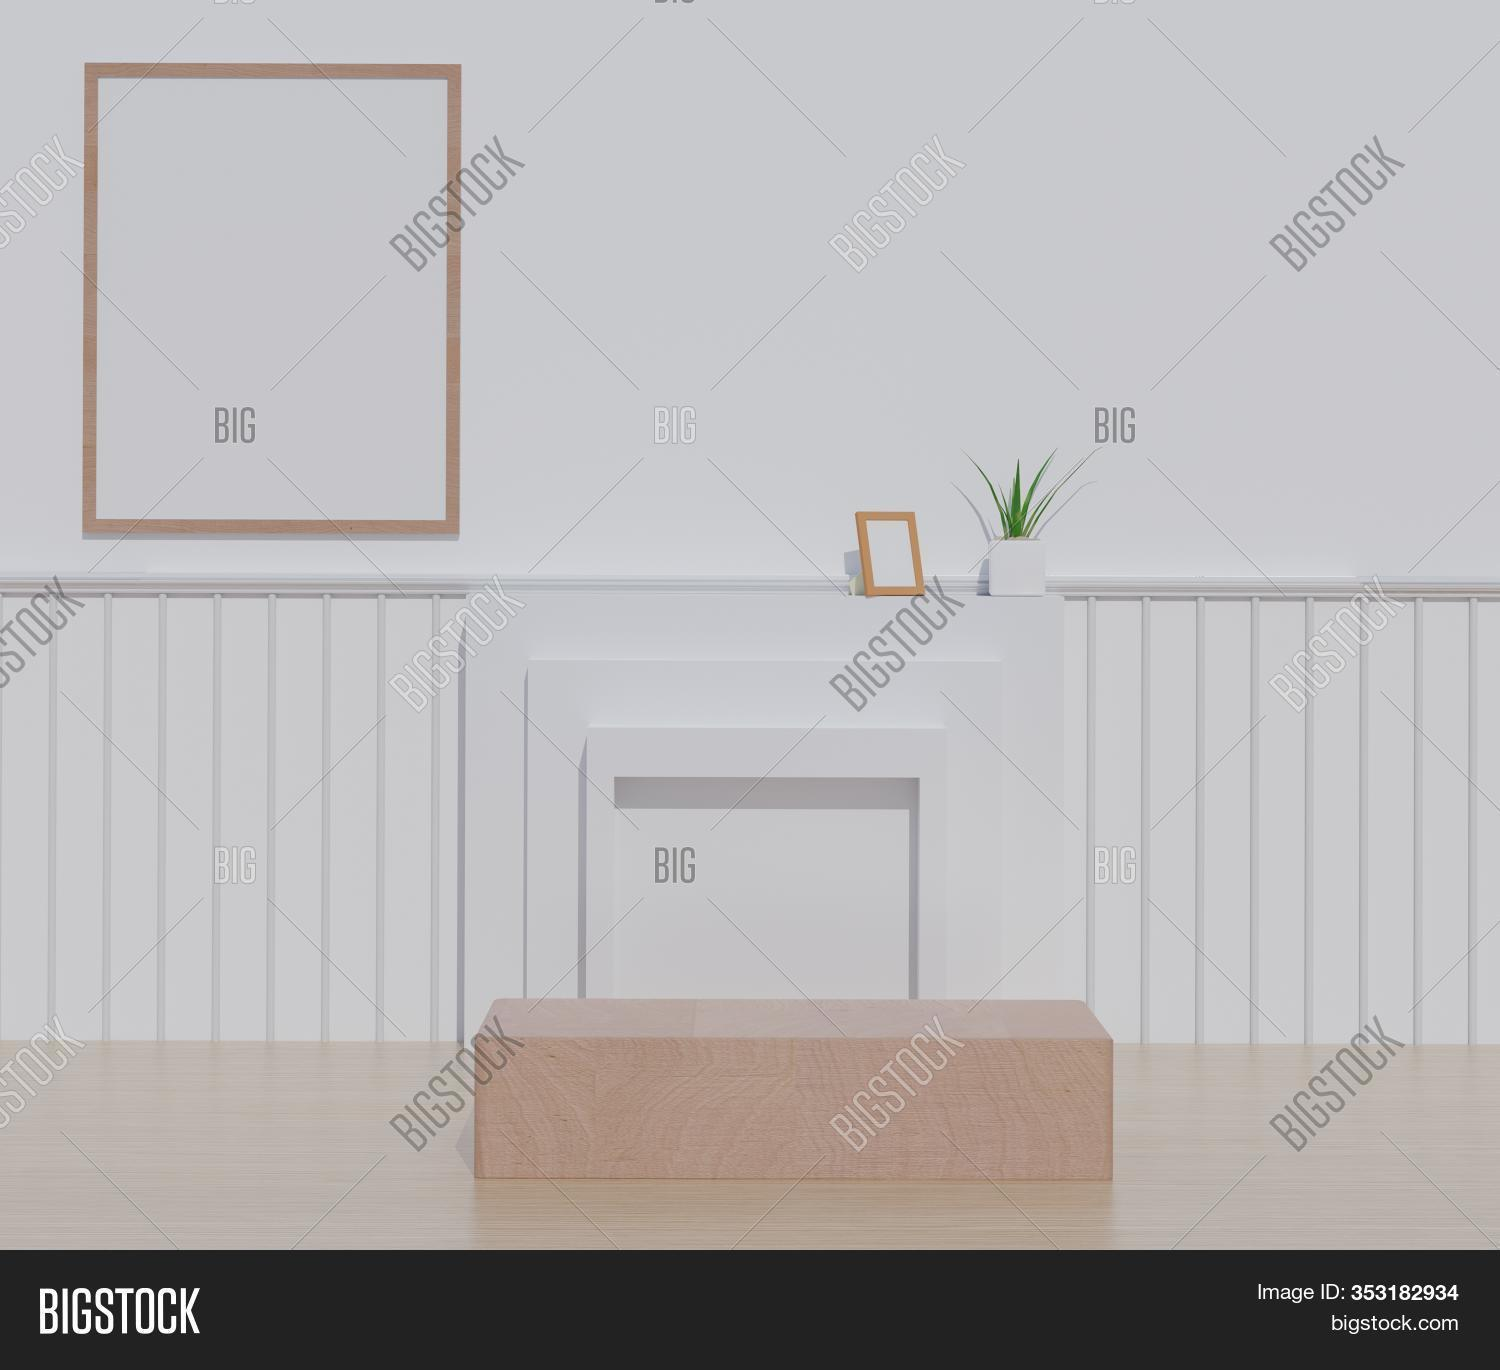 3d Abstract Minimal Image Photo Free Trial Bigstock